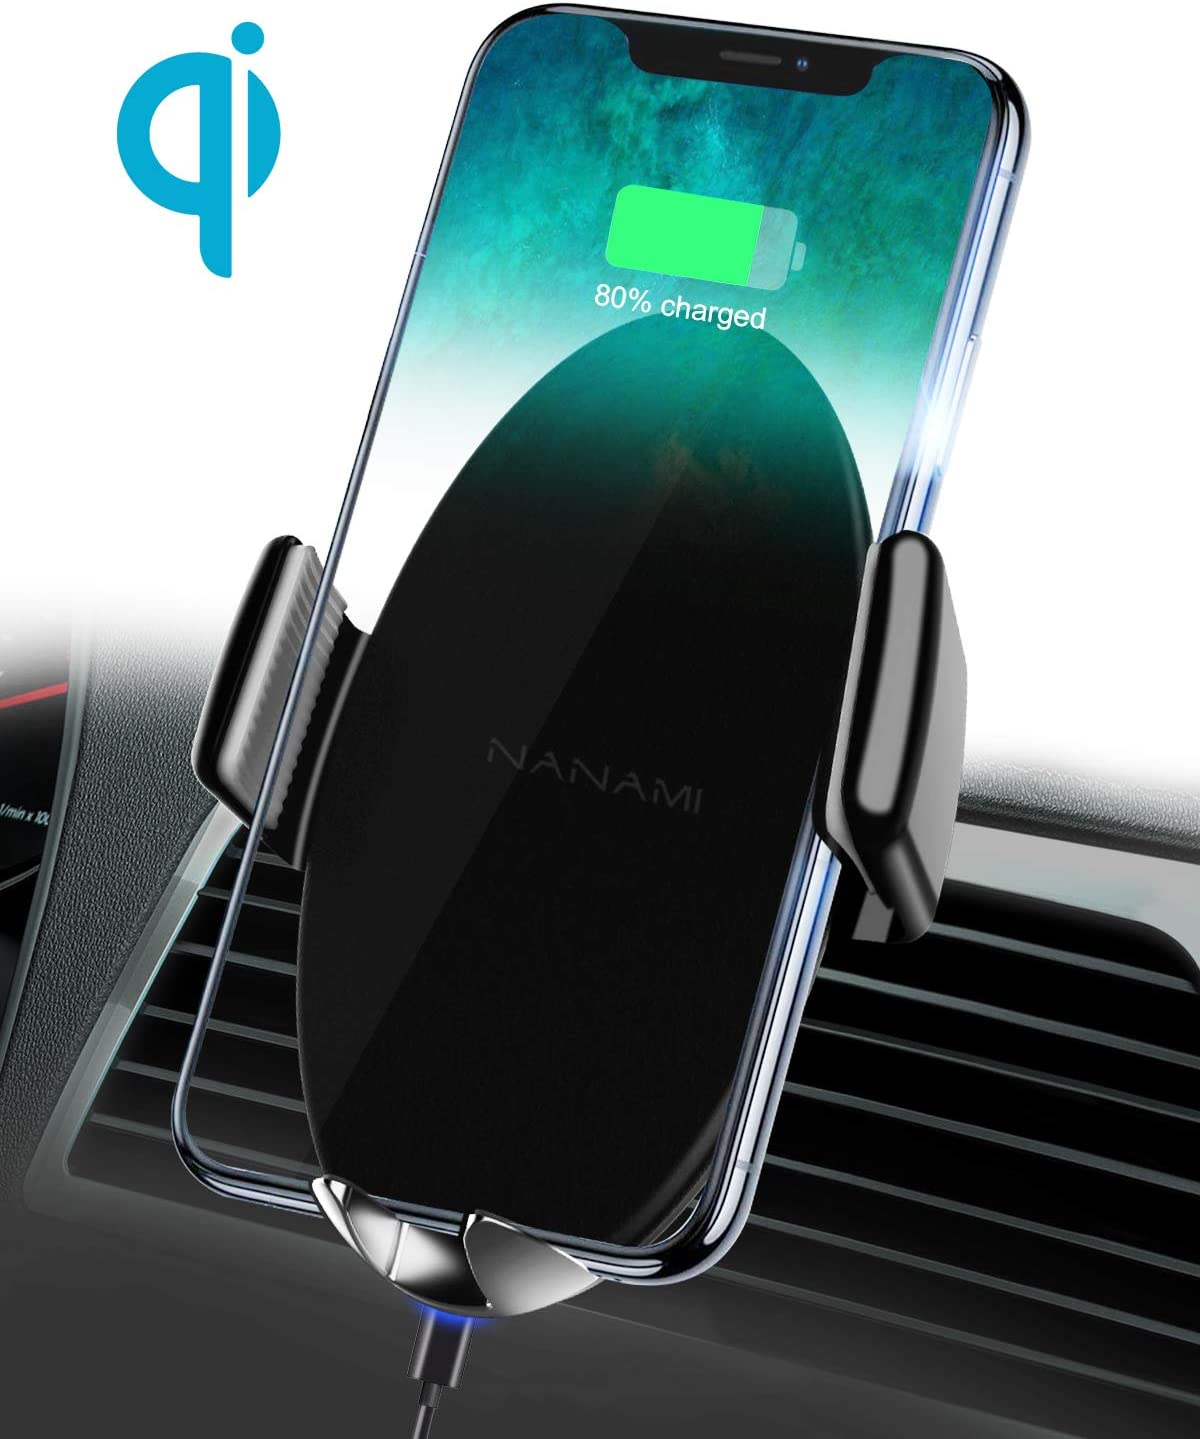 NANAMI Wireless Car Charger,10W Max Fast Charging Car Mount,Air Vent Auto-Clamping Phone Holder,Compatible iPhone 11//11 Pro//11 Pro Max//XS Max//XS//XR//X//8//8 Plus,Samsung S10//S10+//S9//S8//S7//Note 10//9//8,LG